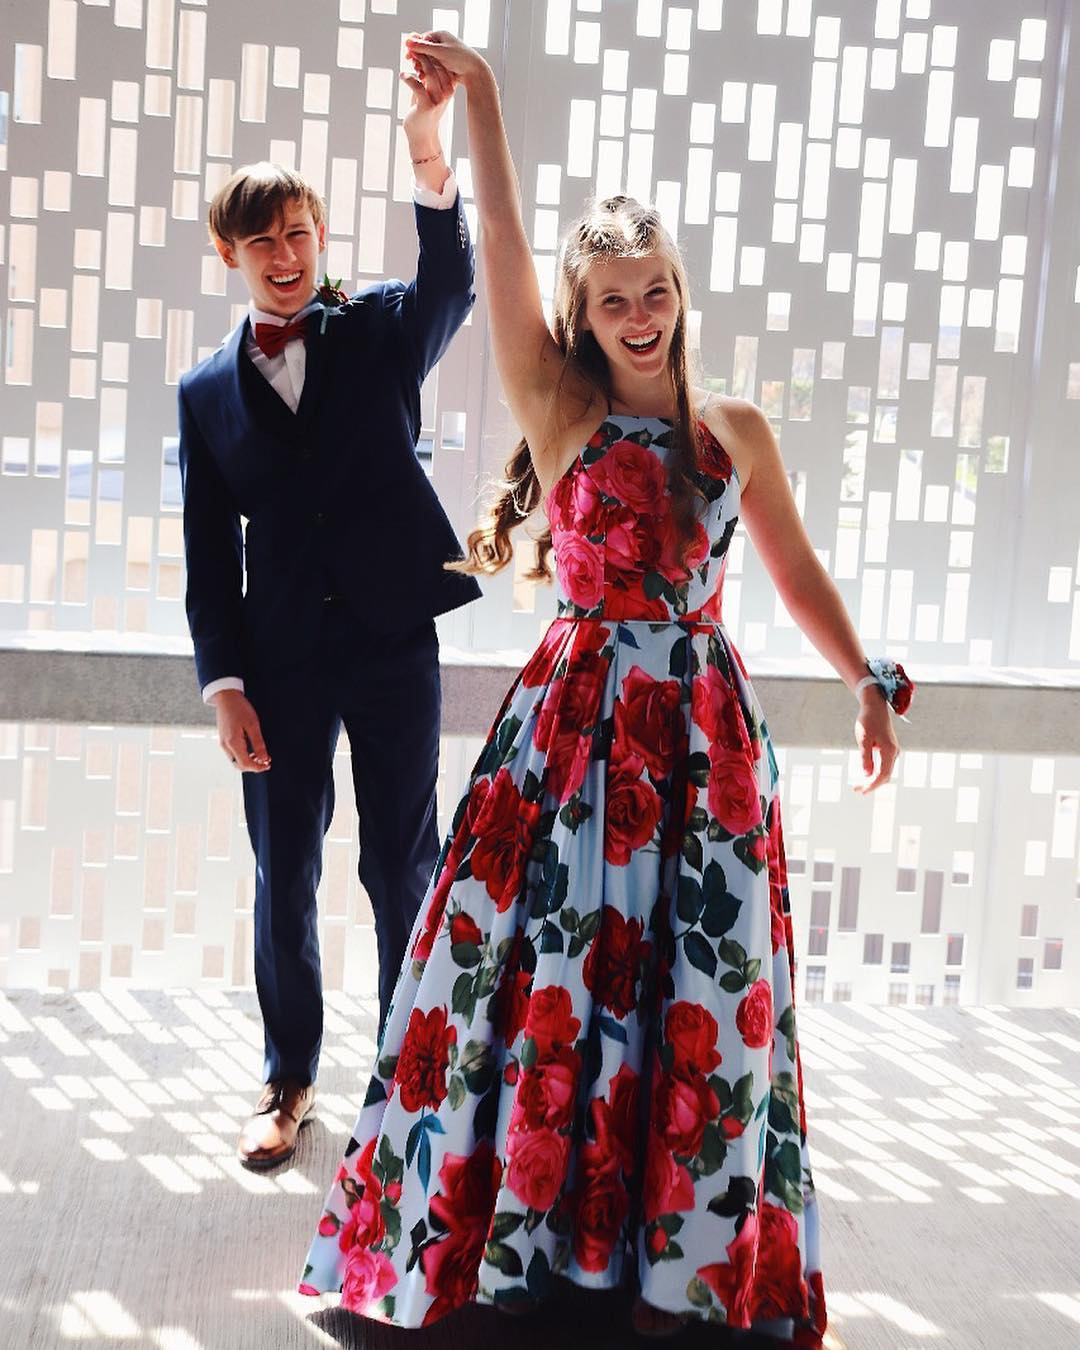 Boy twirling girl in long floral print prom dress from David's Bridal | Prom 2019 Dress Ideas